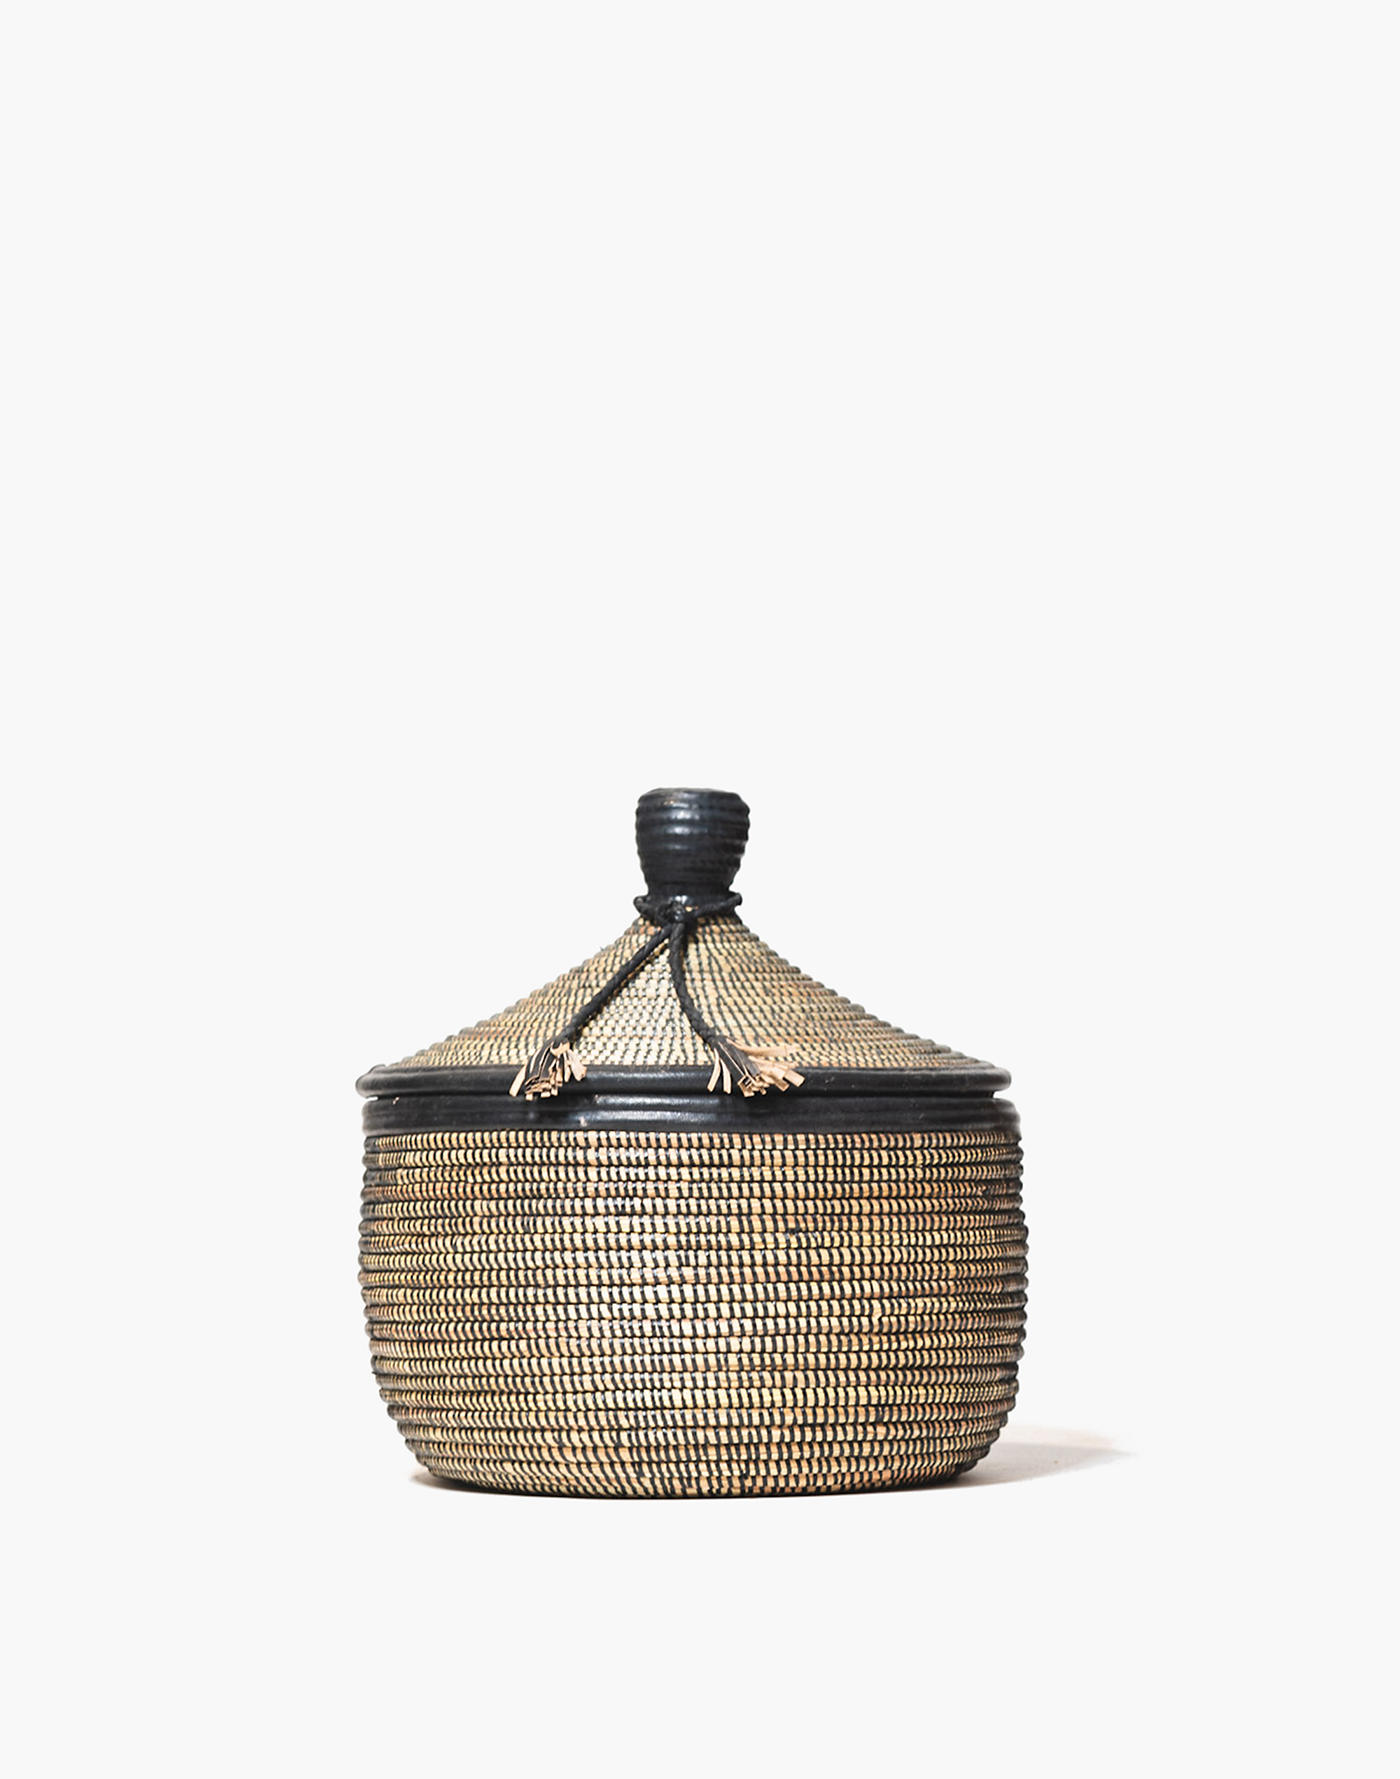 Madewell Tackussanu Senegal Marmite Luxe Basket